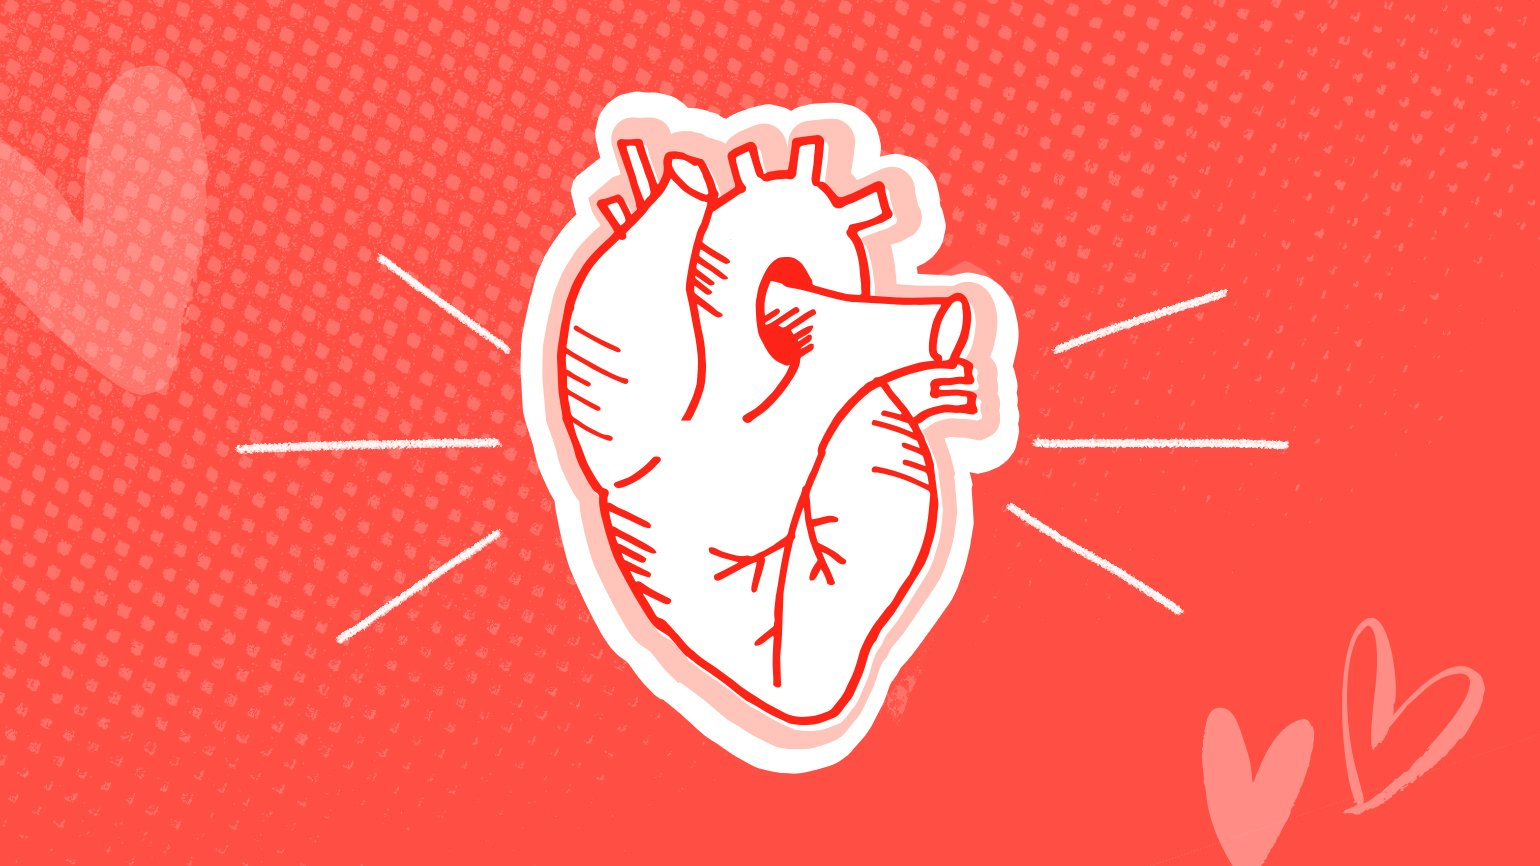 Tips for heart health image of an illustrated robust healthy heart